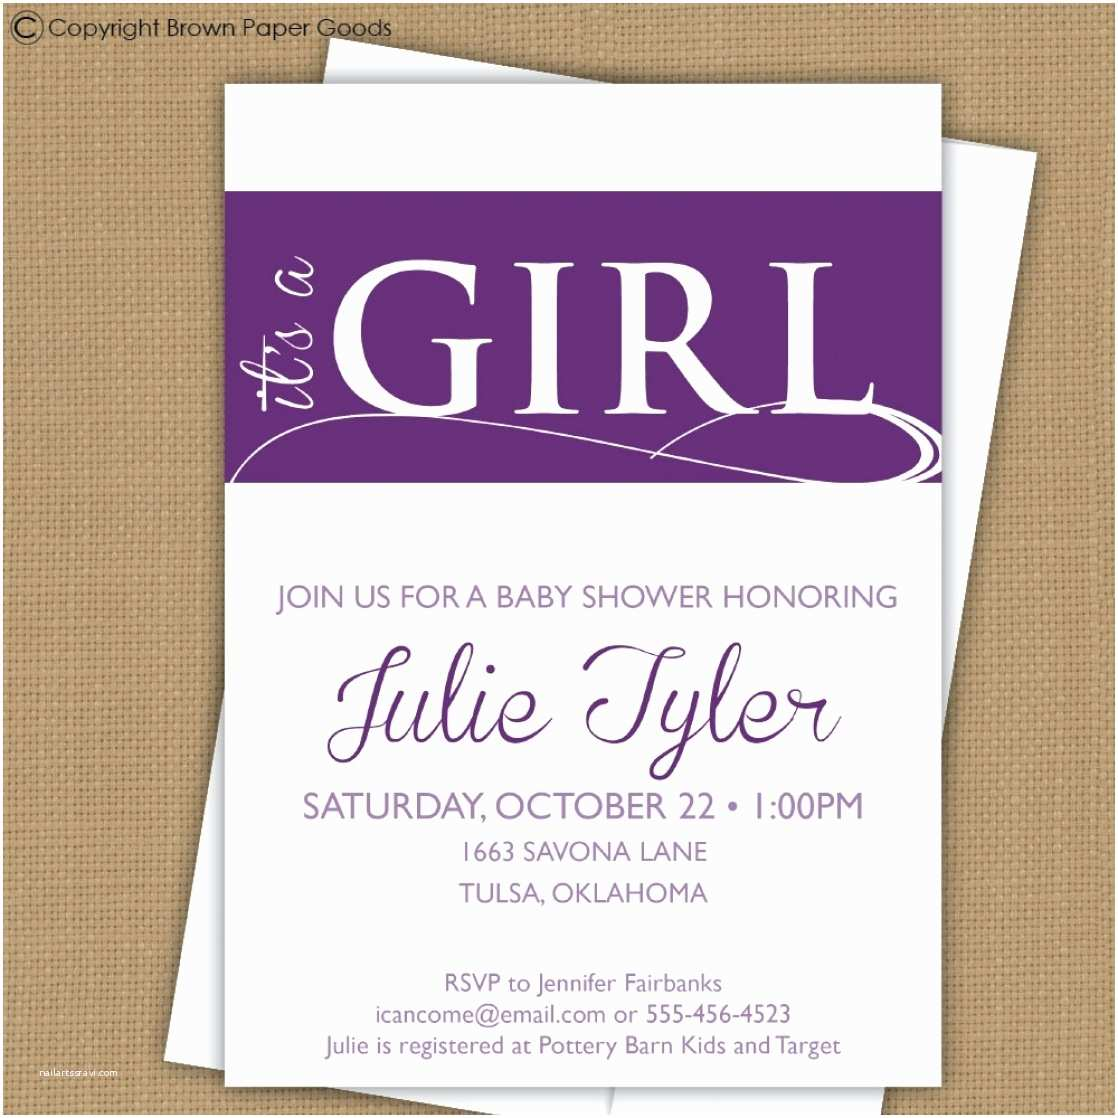 Baby Shower Invitations Tips Baby Shower Invitation Wording Templates With